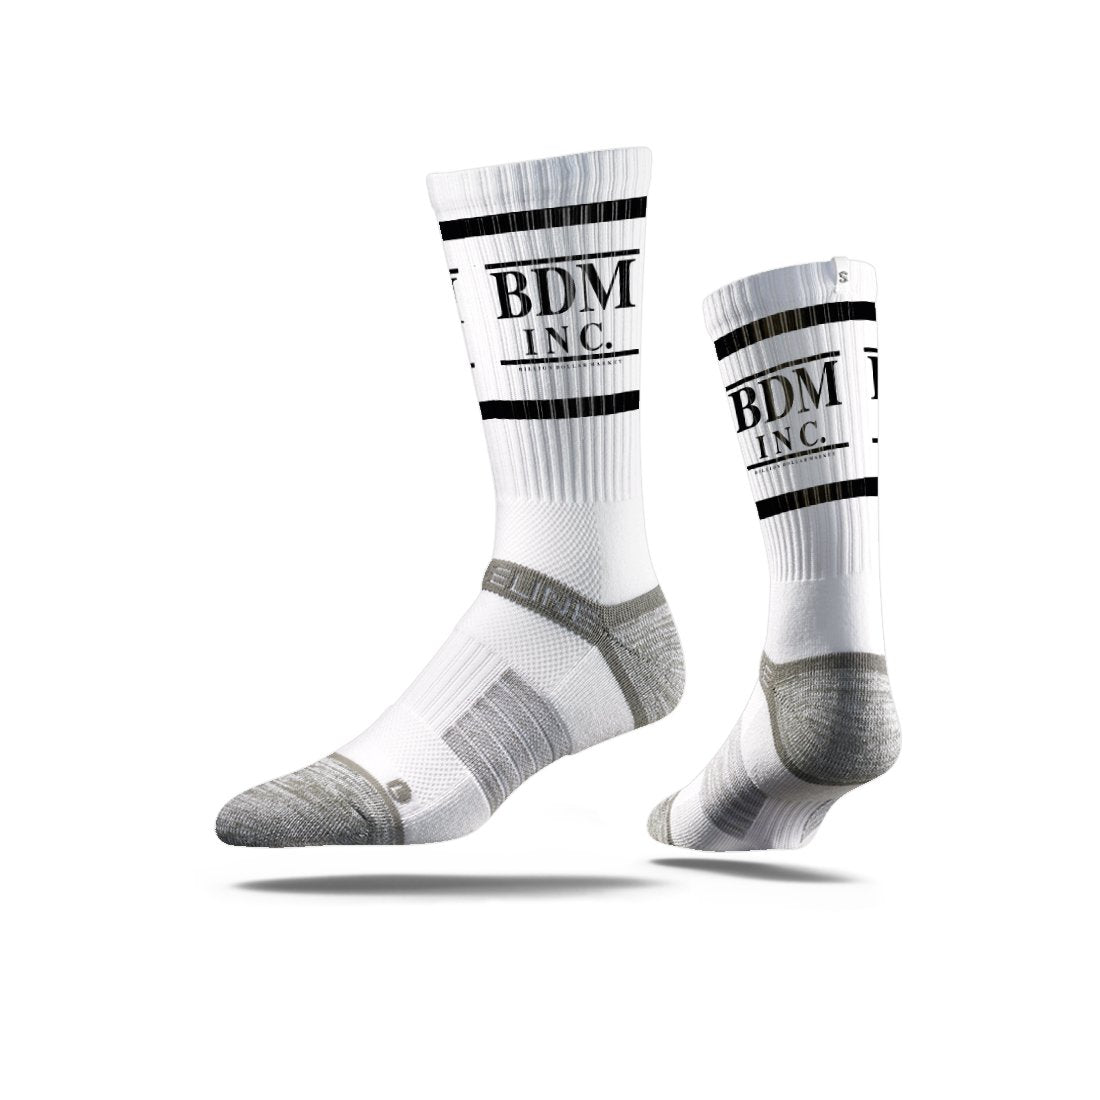 BDM INC White/Black